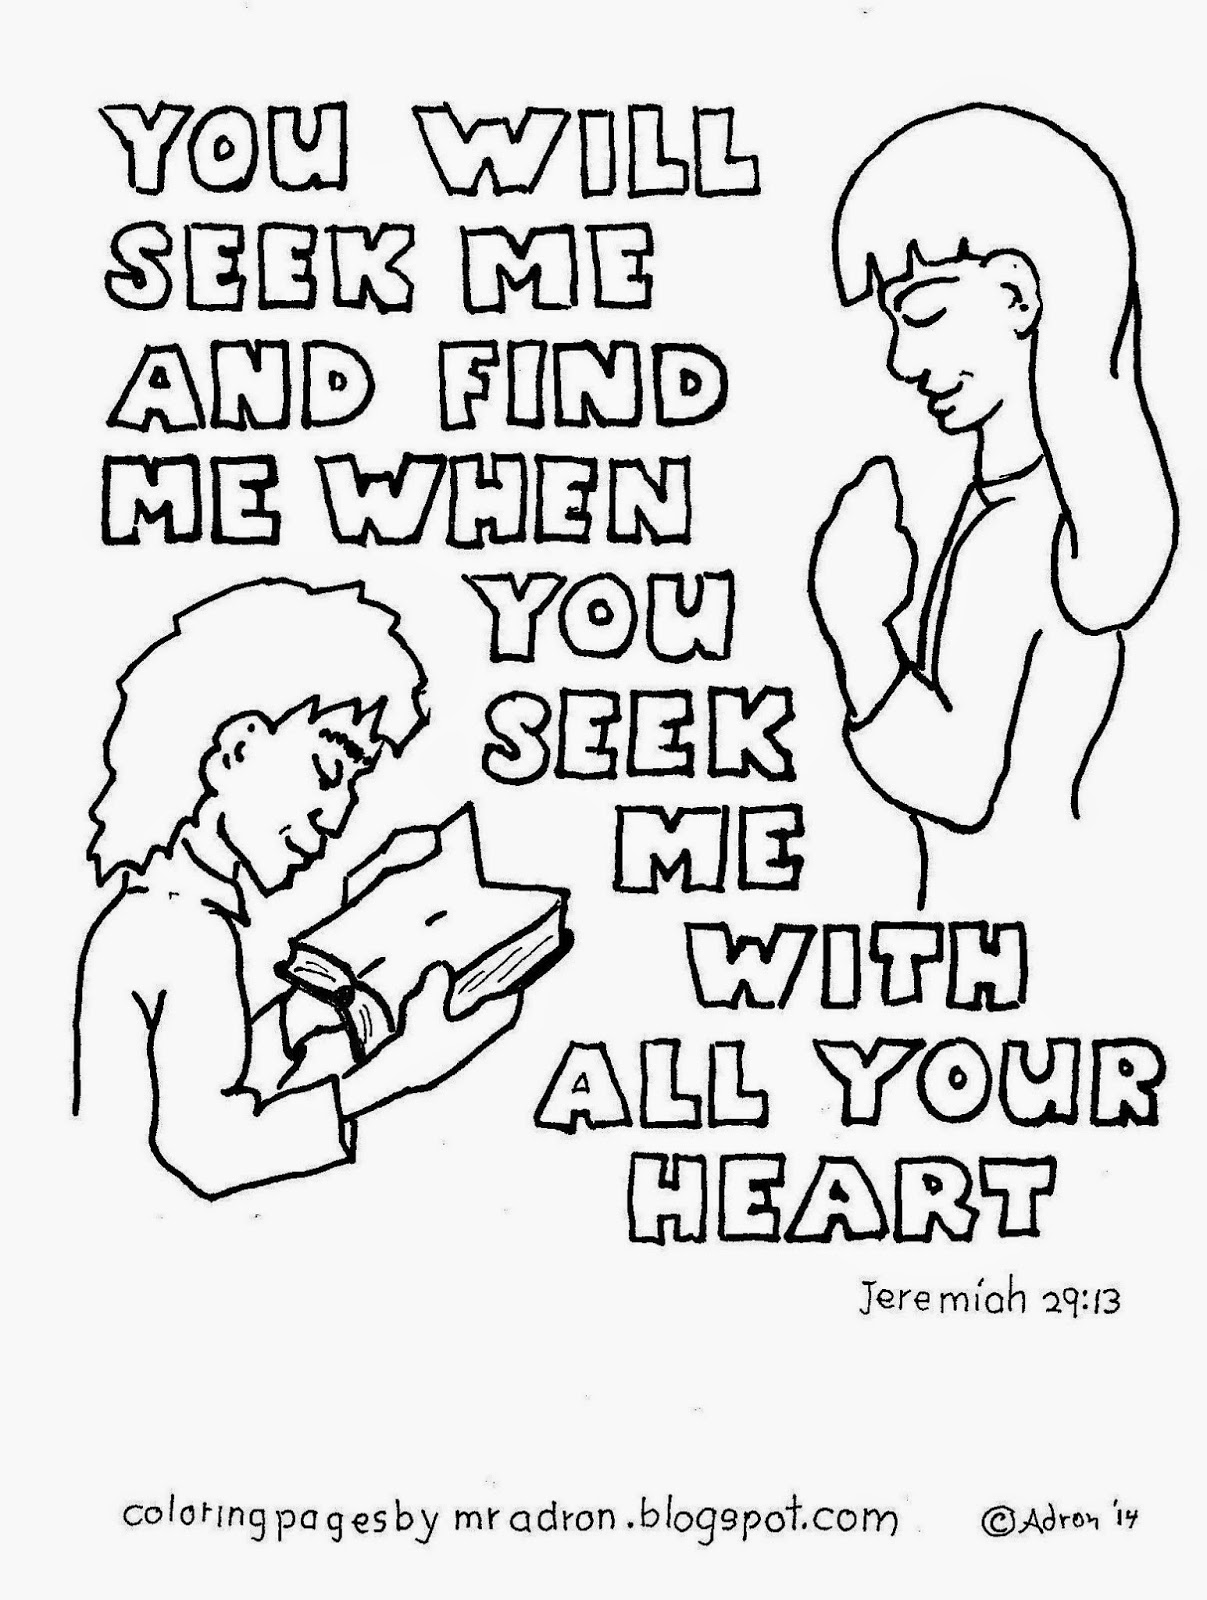 An illustration of Jeremiah 29:13 to print and color.